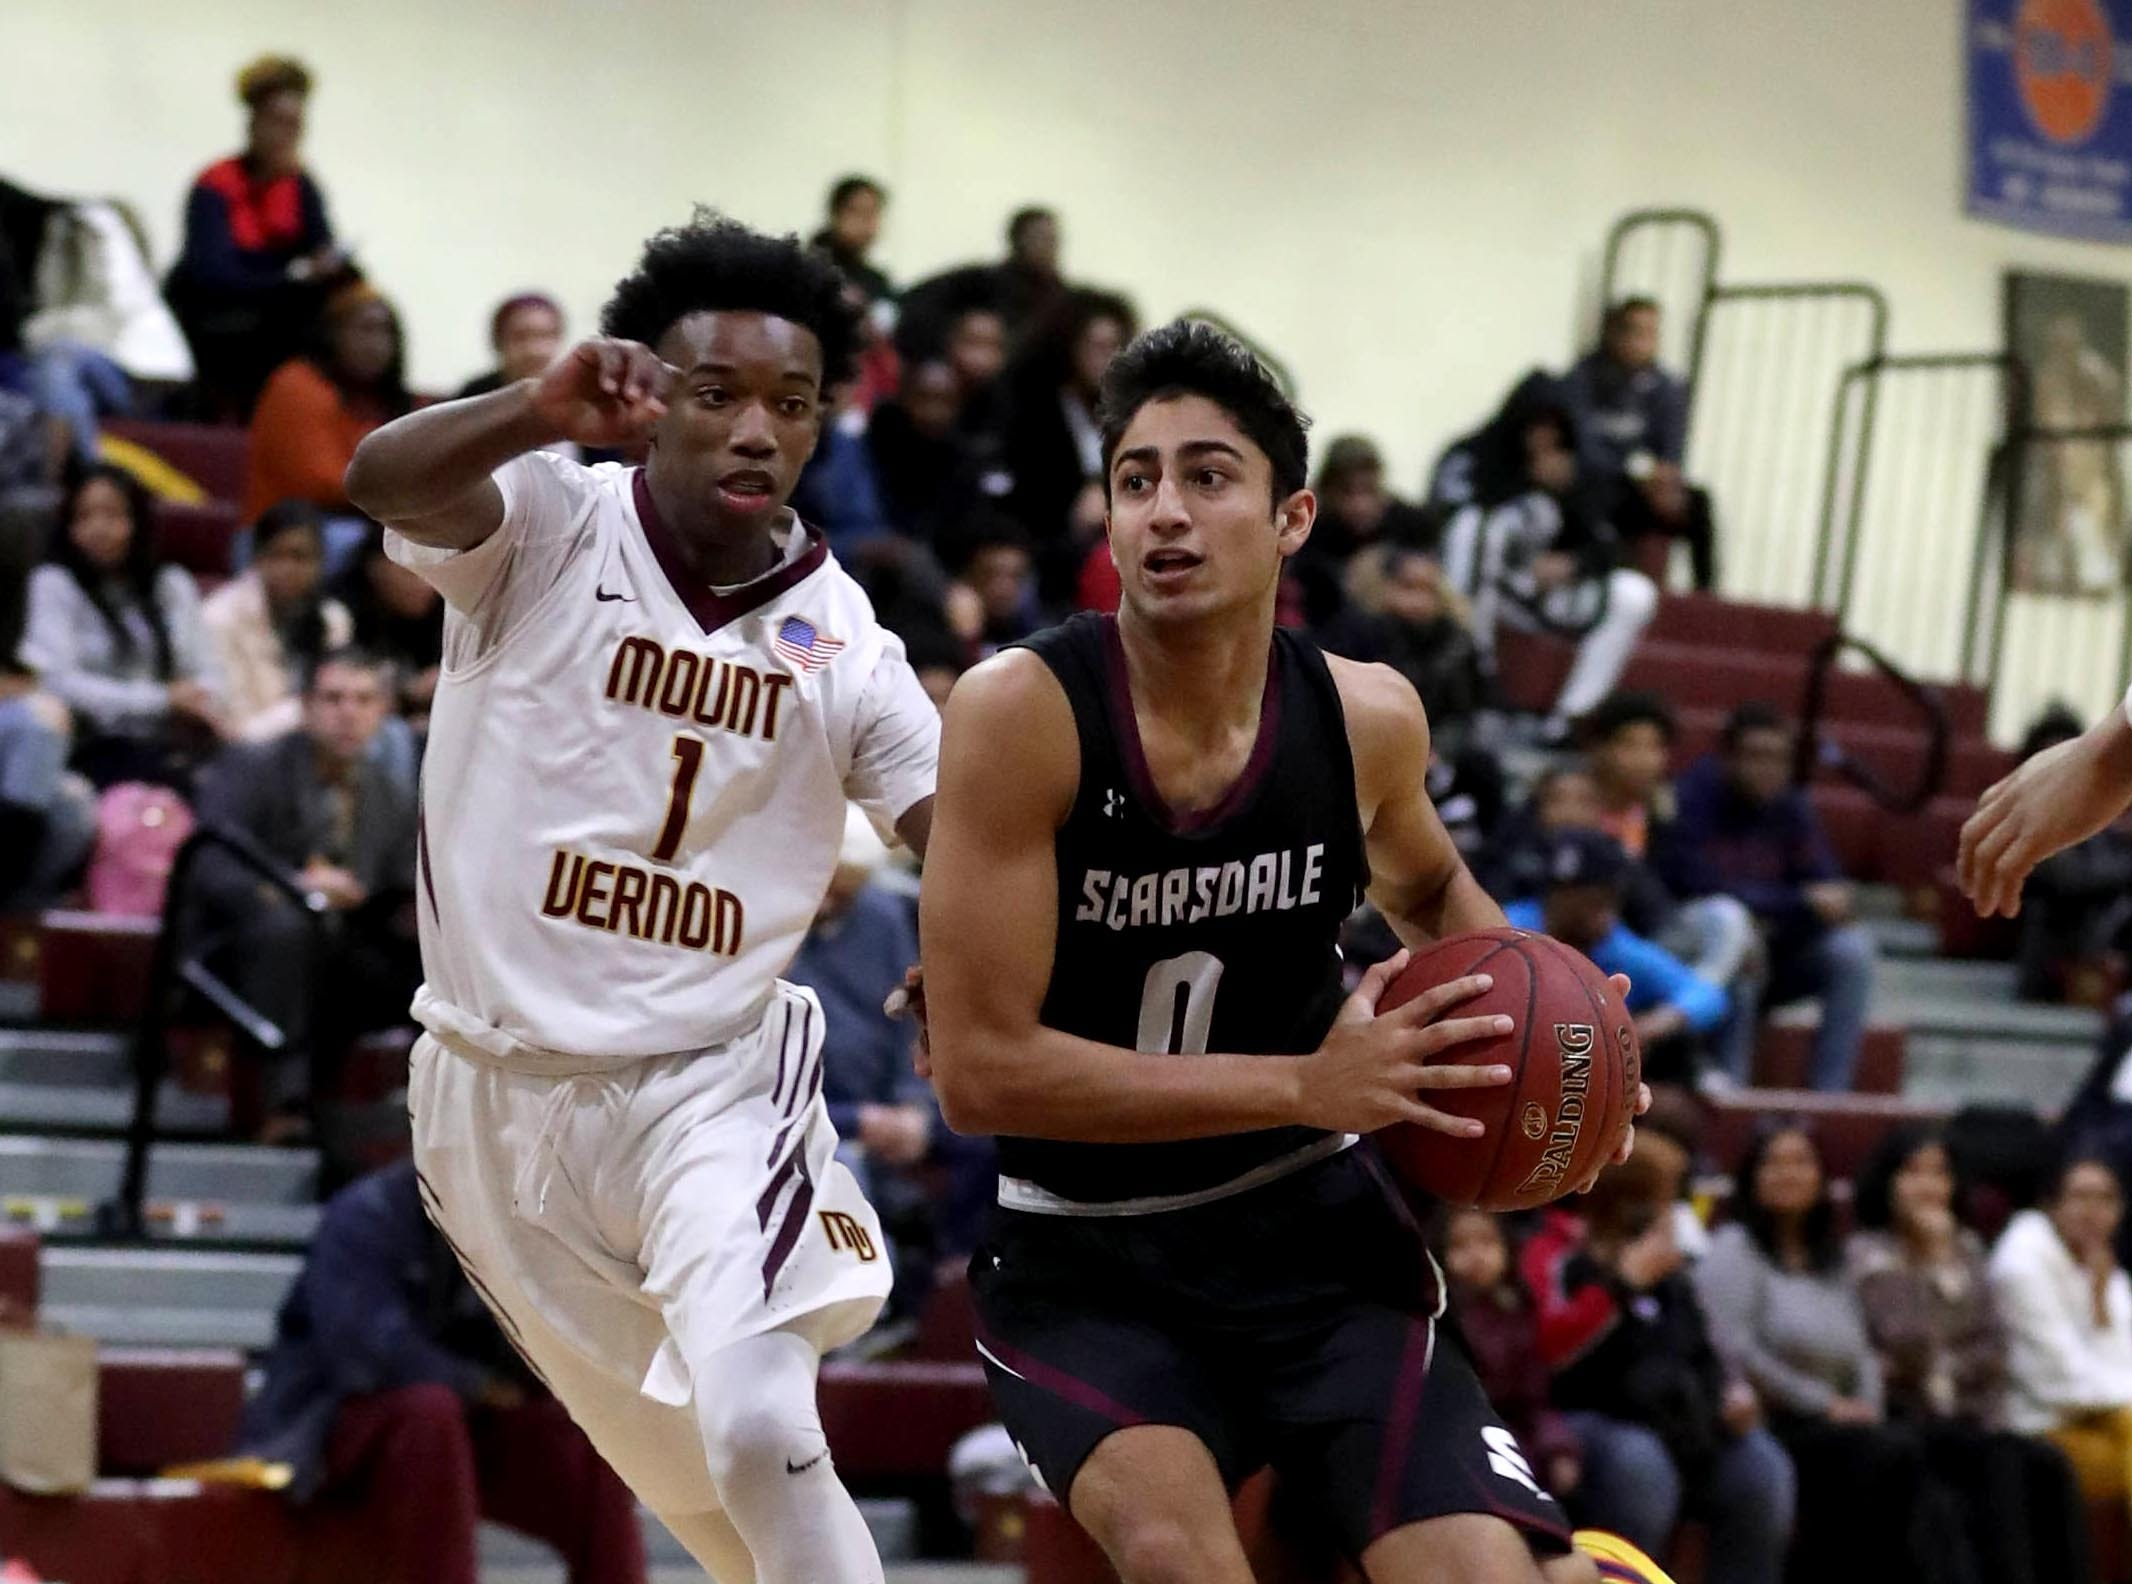 Jayshen Saigal of Scarsdale drives past Irvin Patrick of Mount Vernon during a varsity basketball game at Mount Vernon High School Jan. 9, 2019. Mount Vernon defeated Scarsdale 70-54.